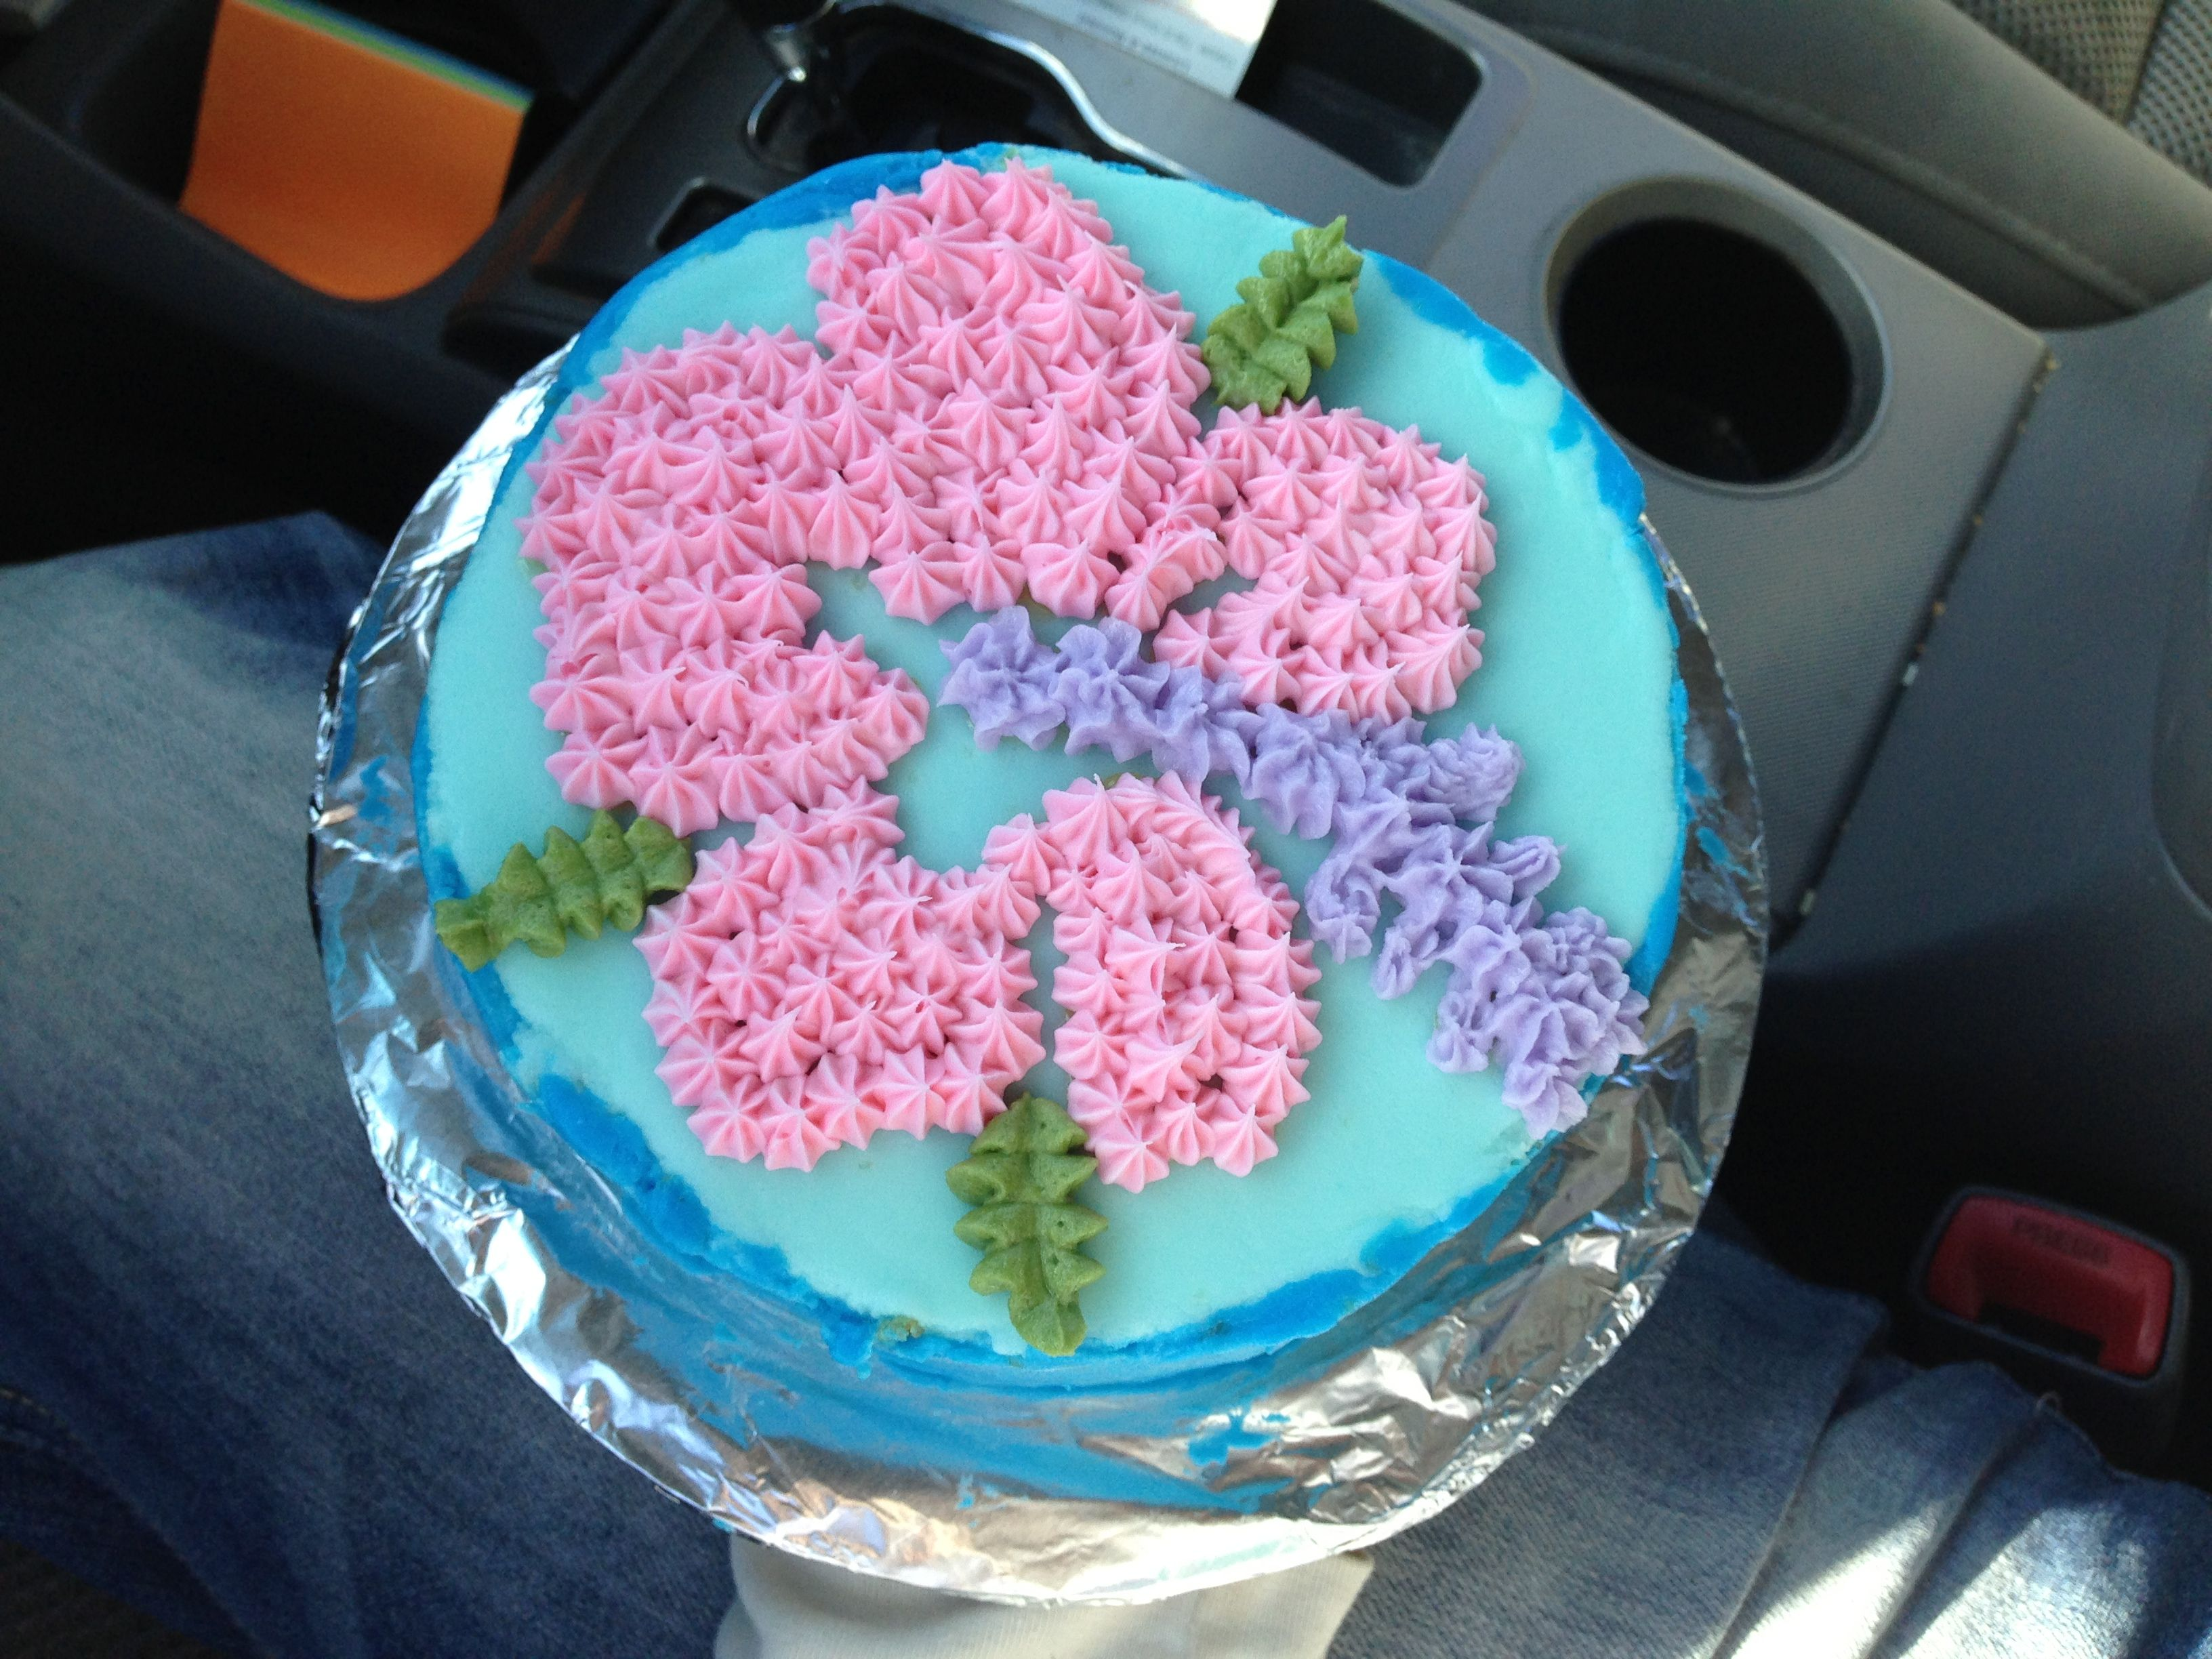 Final for my first class! Tropical cake. Strawberry filling